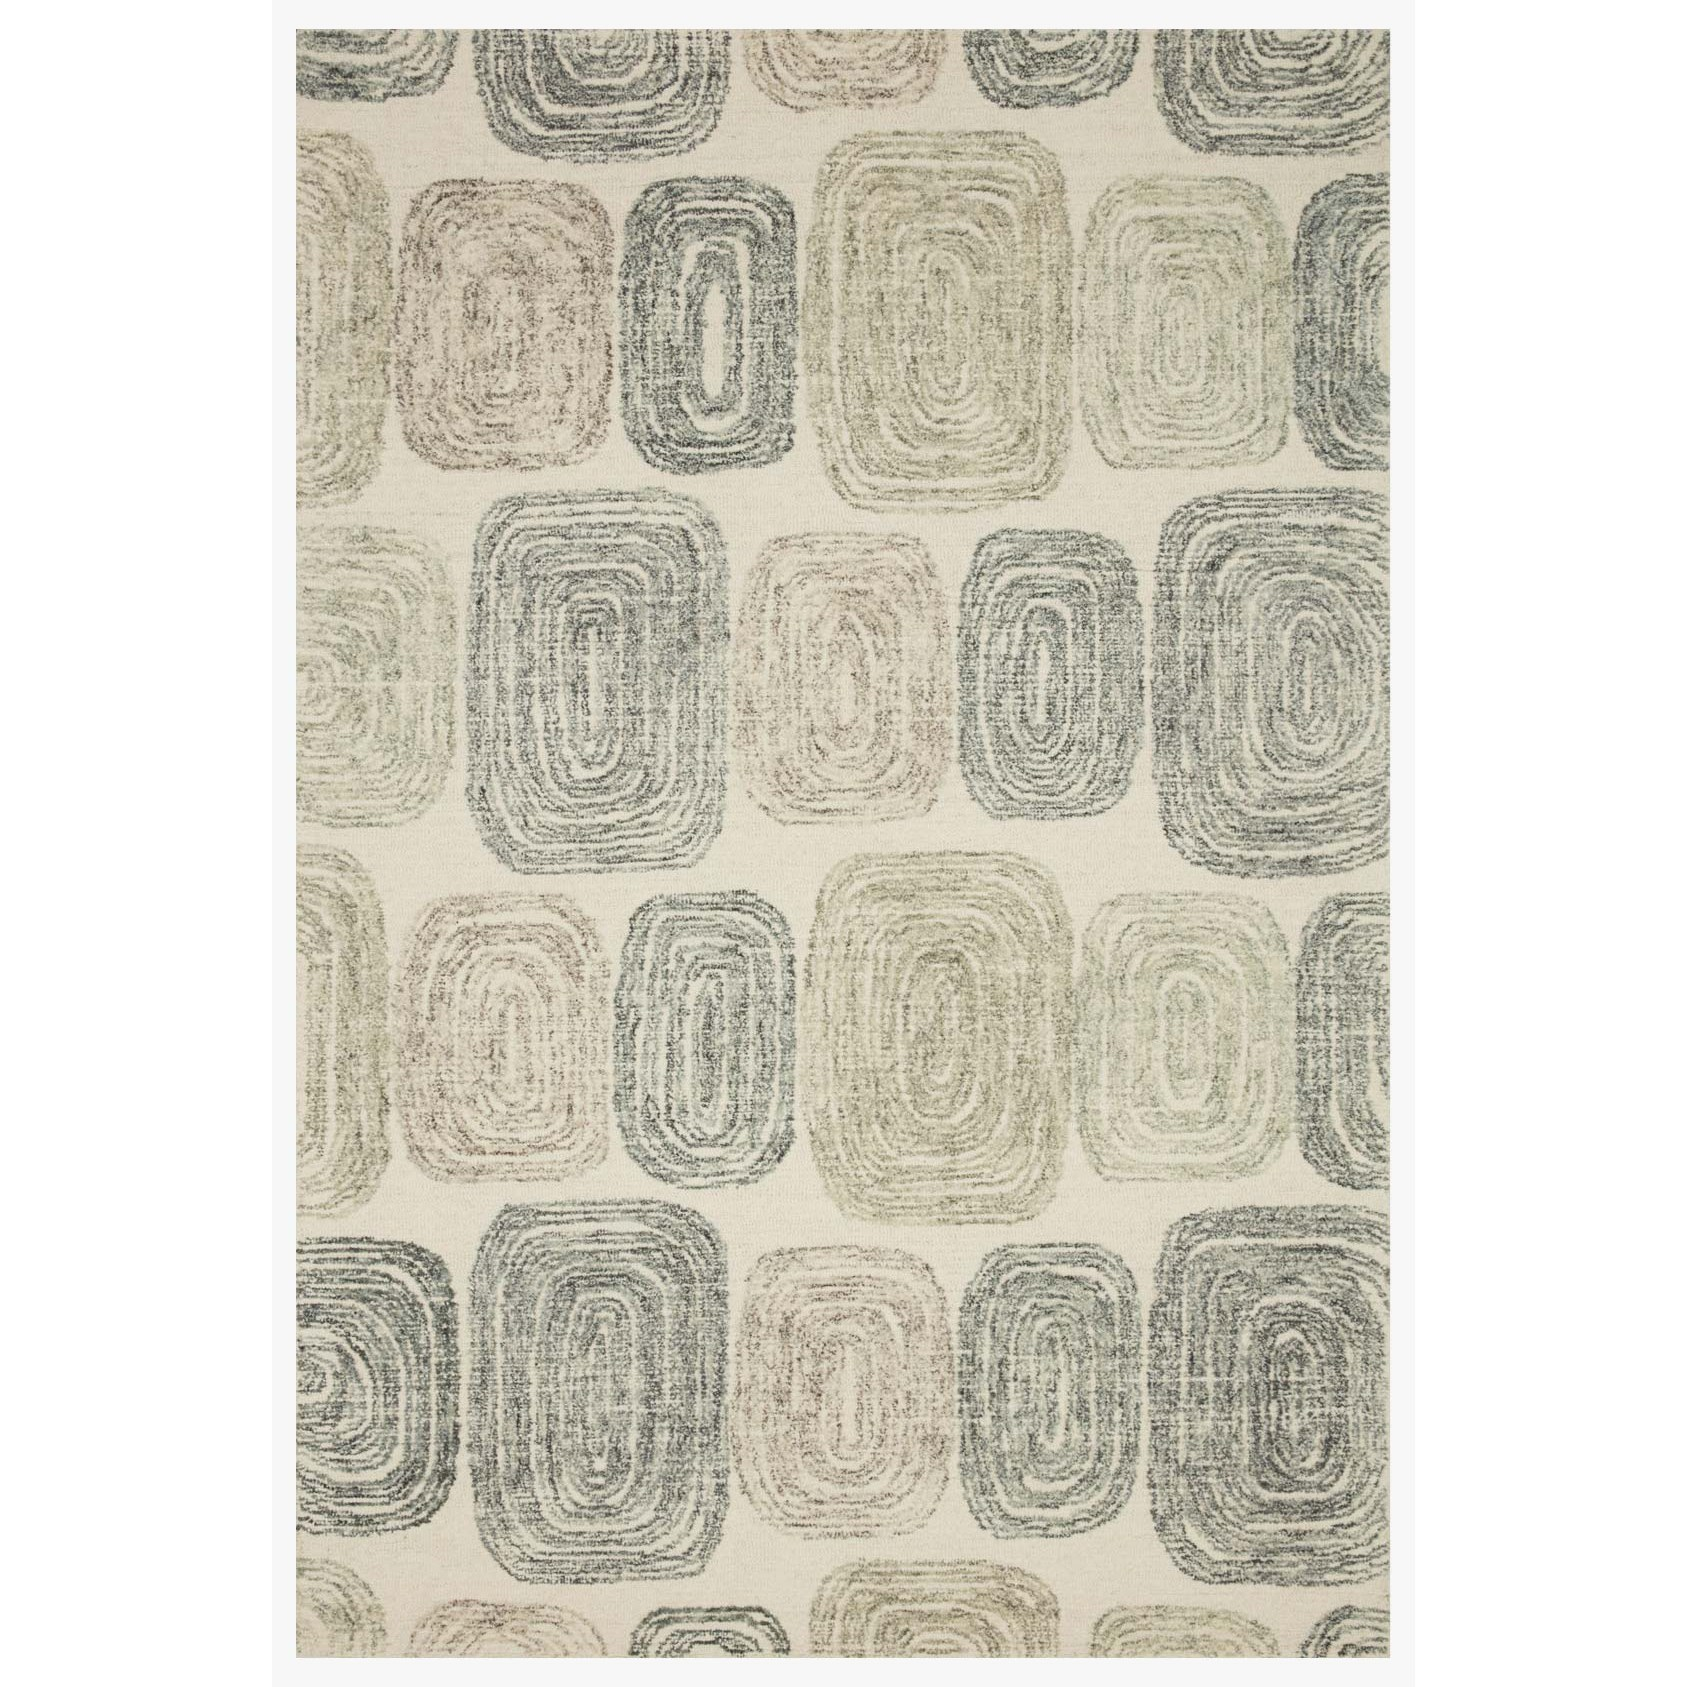 "Milo 2'6"" x 7'6"" Dk. Grey / Neutral Rug by Loloi Rugs at Virginia Furniture Market"